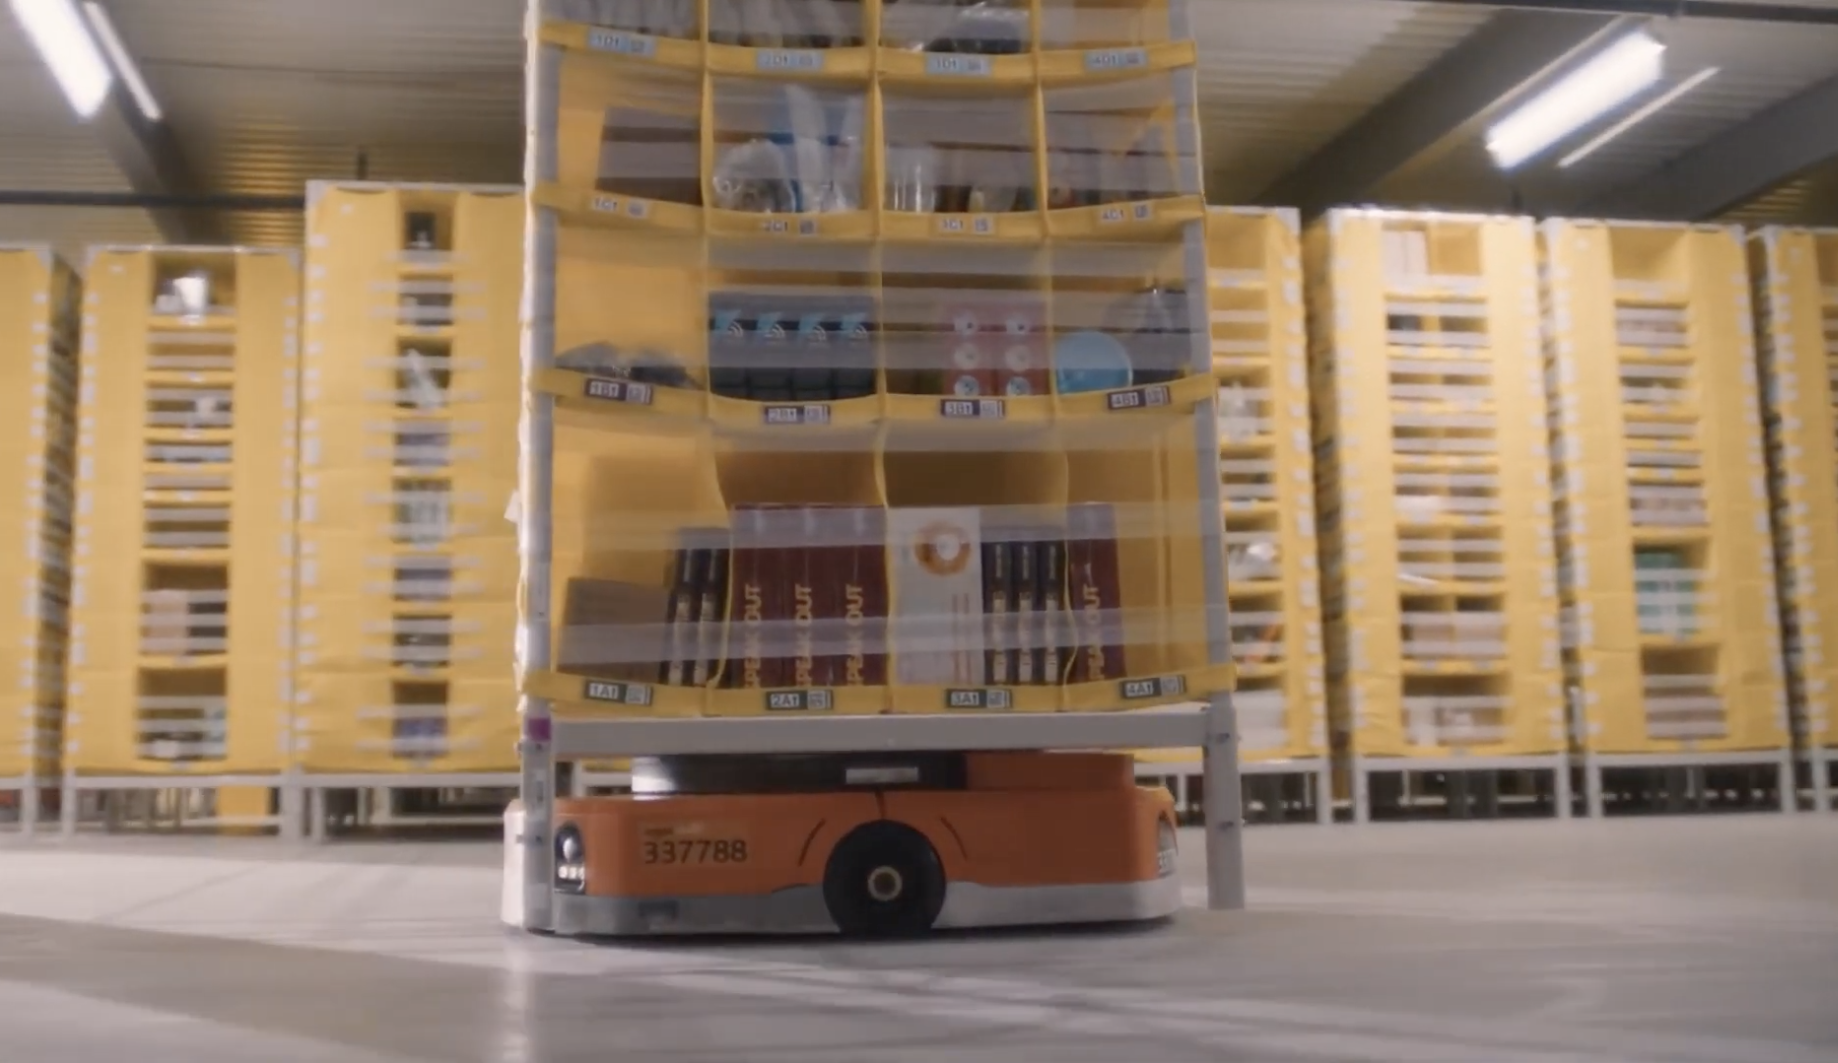 At Amazon robotics fulfillment centers, orange-colored robotic drive units can navigate around the warehouse, lift pods filled with customer orders off the ground and carry them where needed.